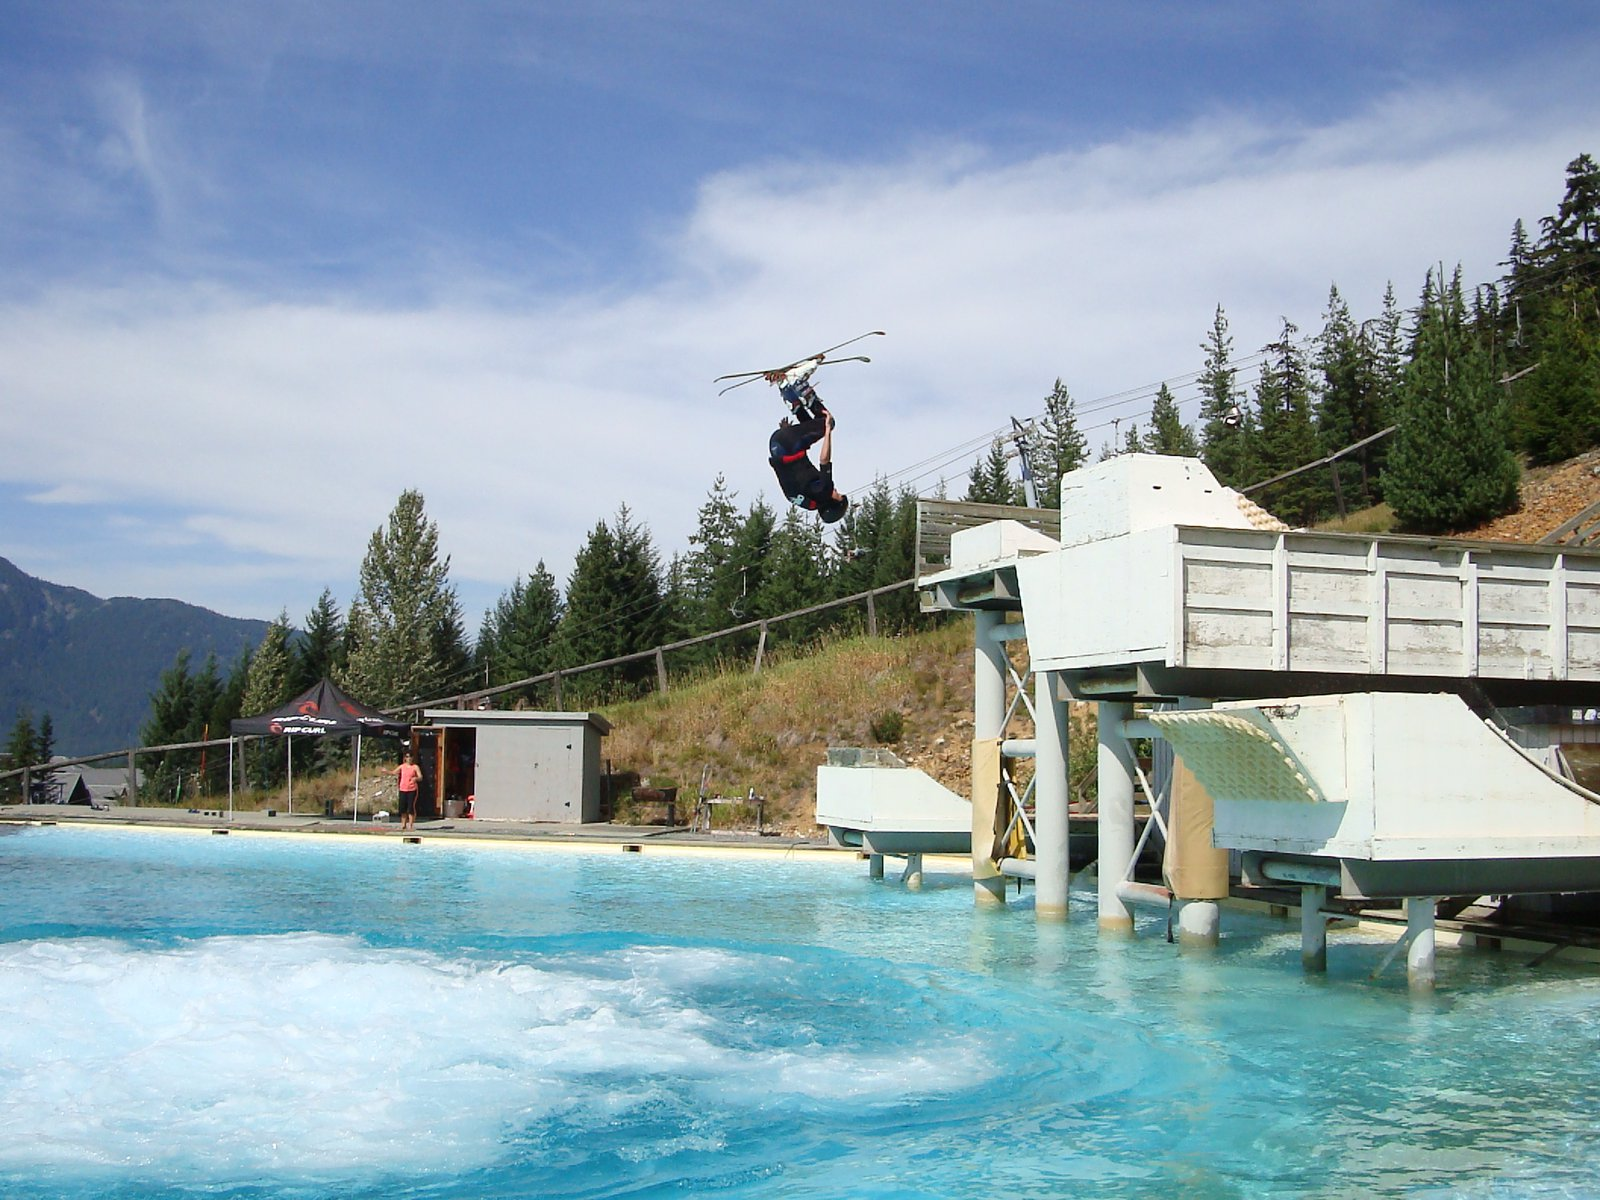 Whistler Freestyle Training Ramp -Summer Camp